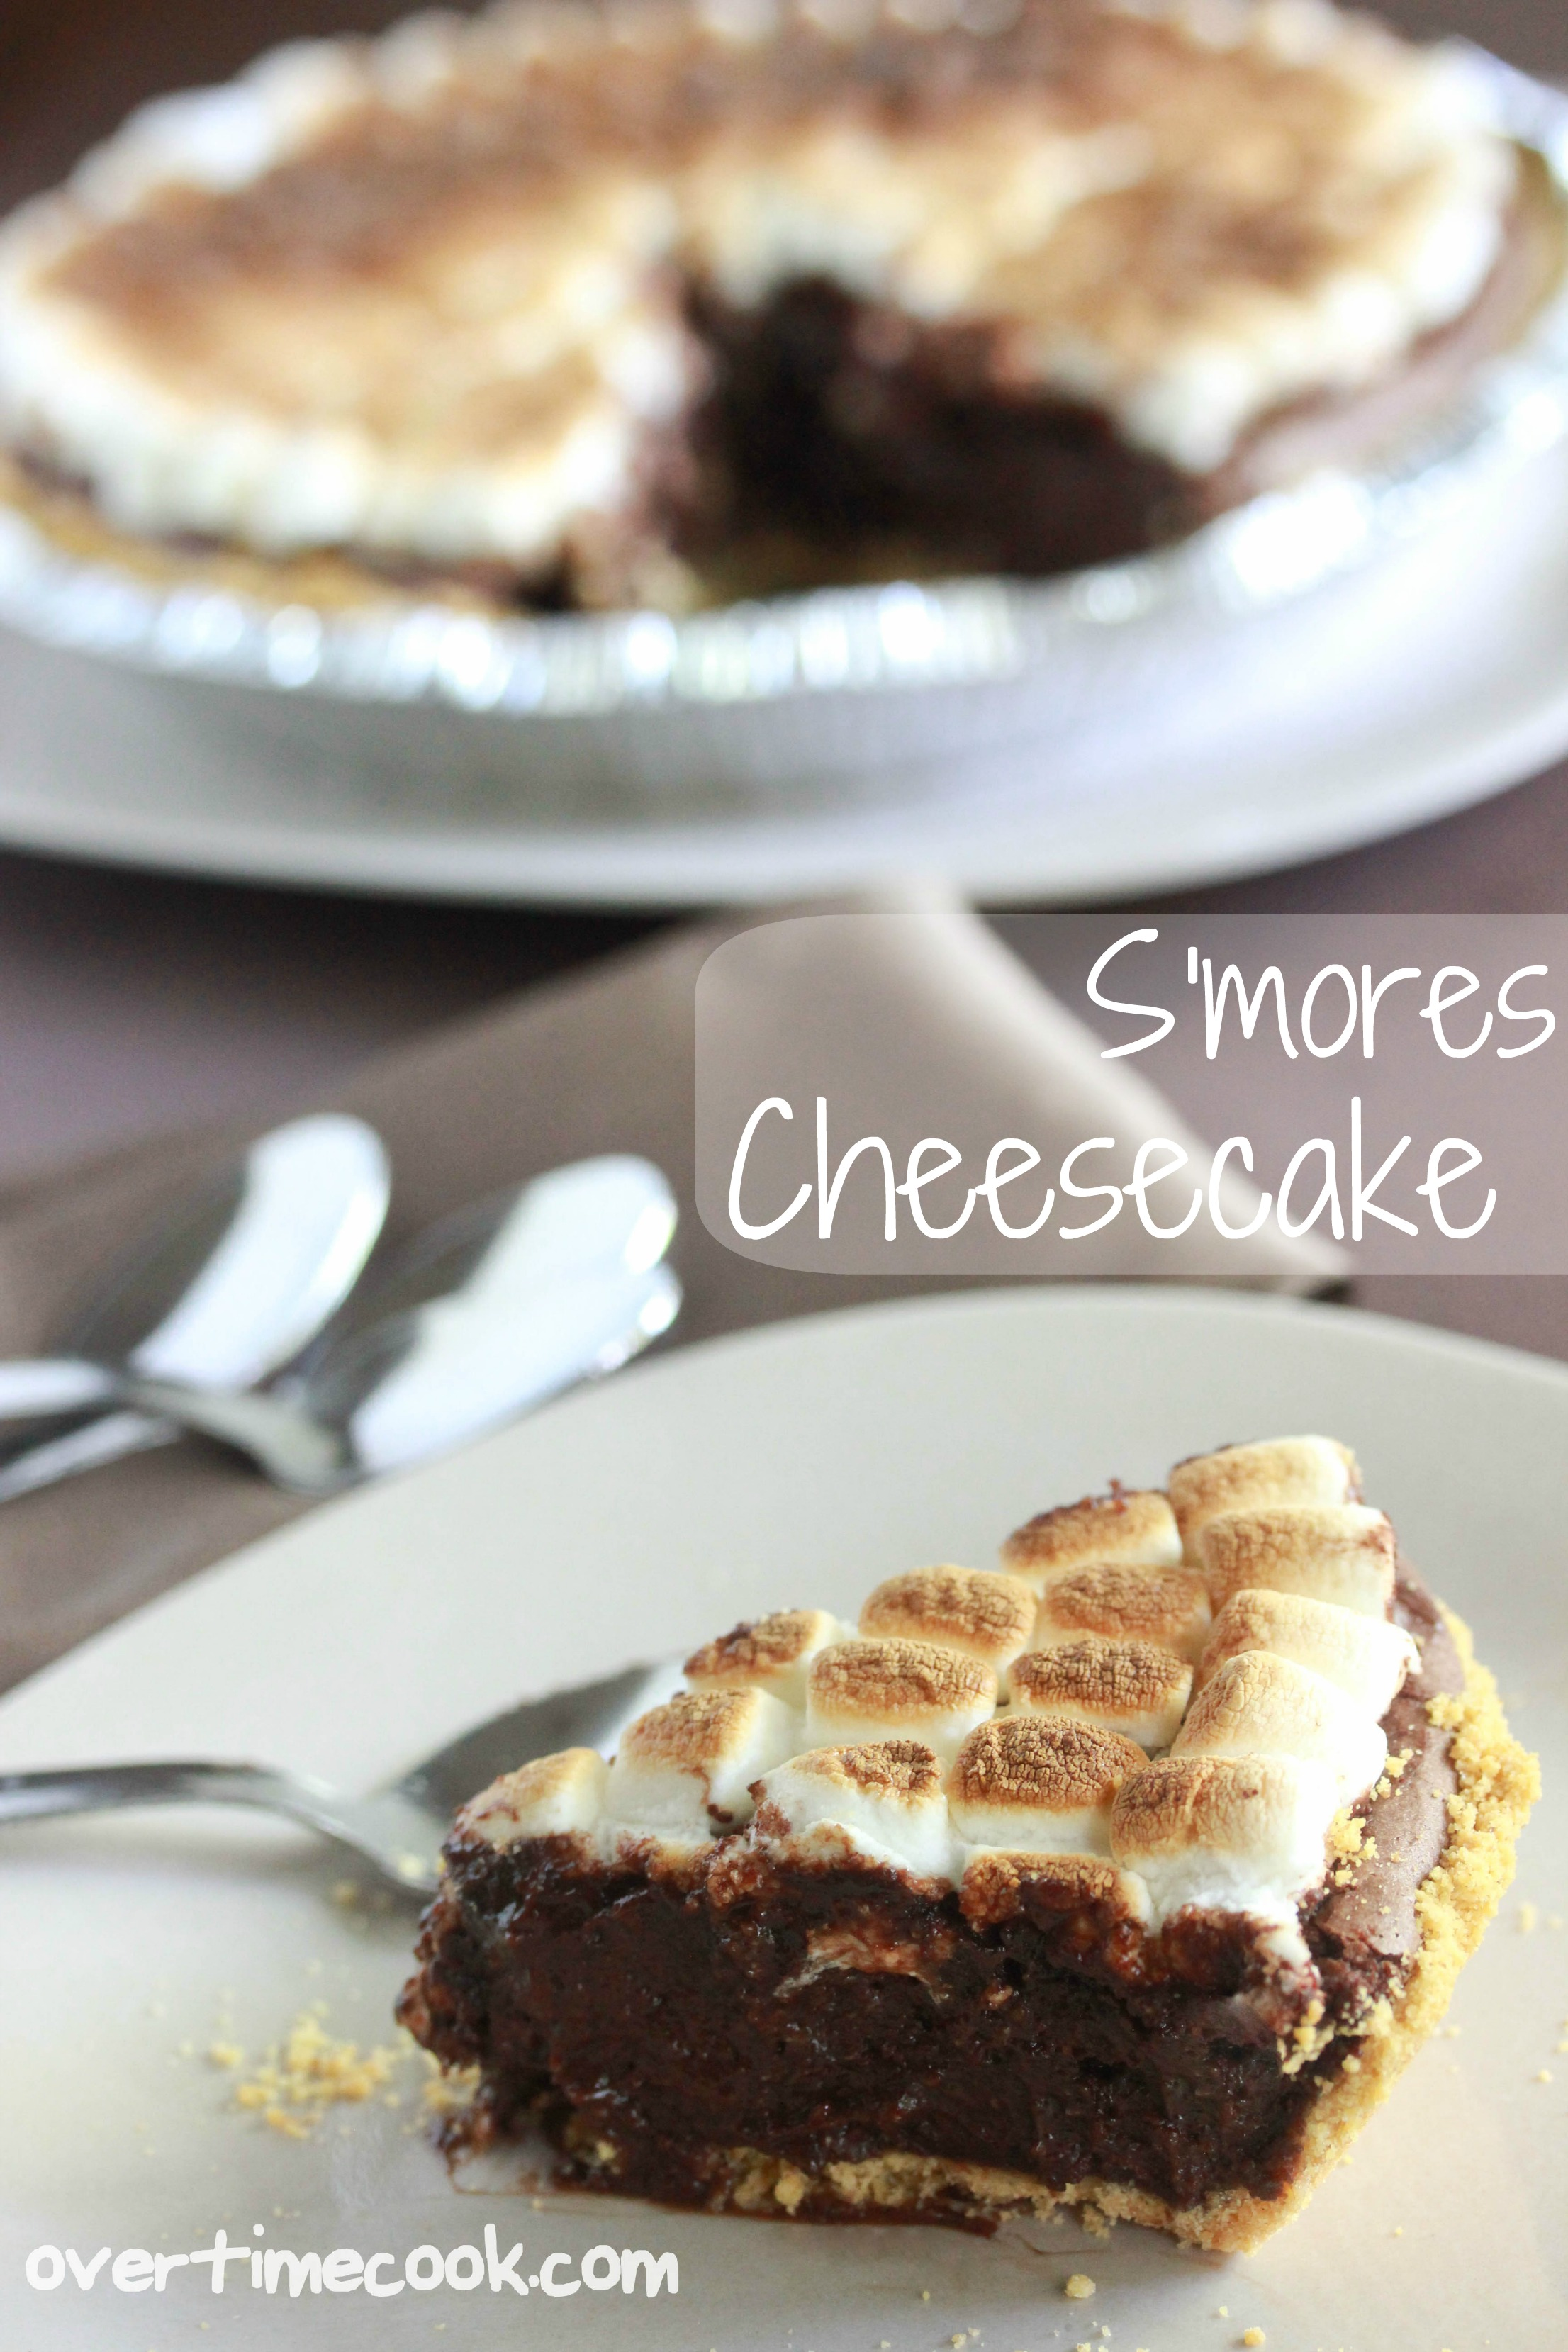 mores Cheesecake - Overtime Cook